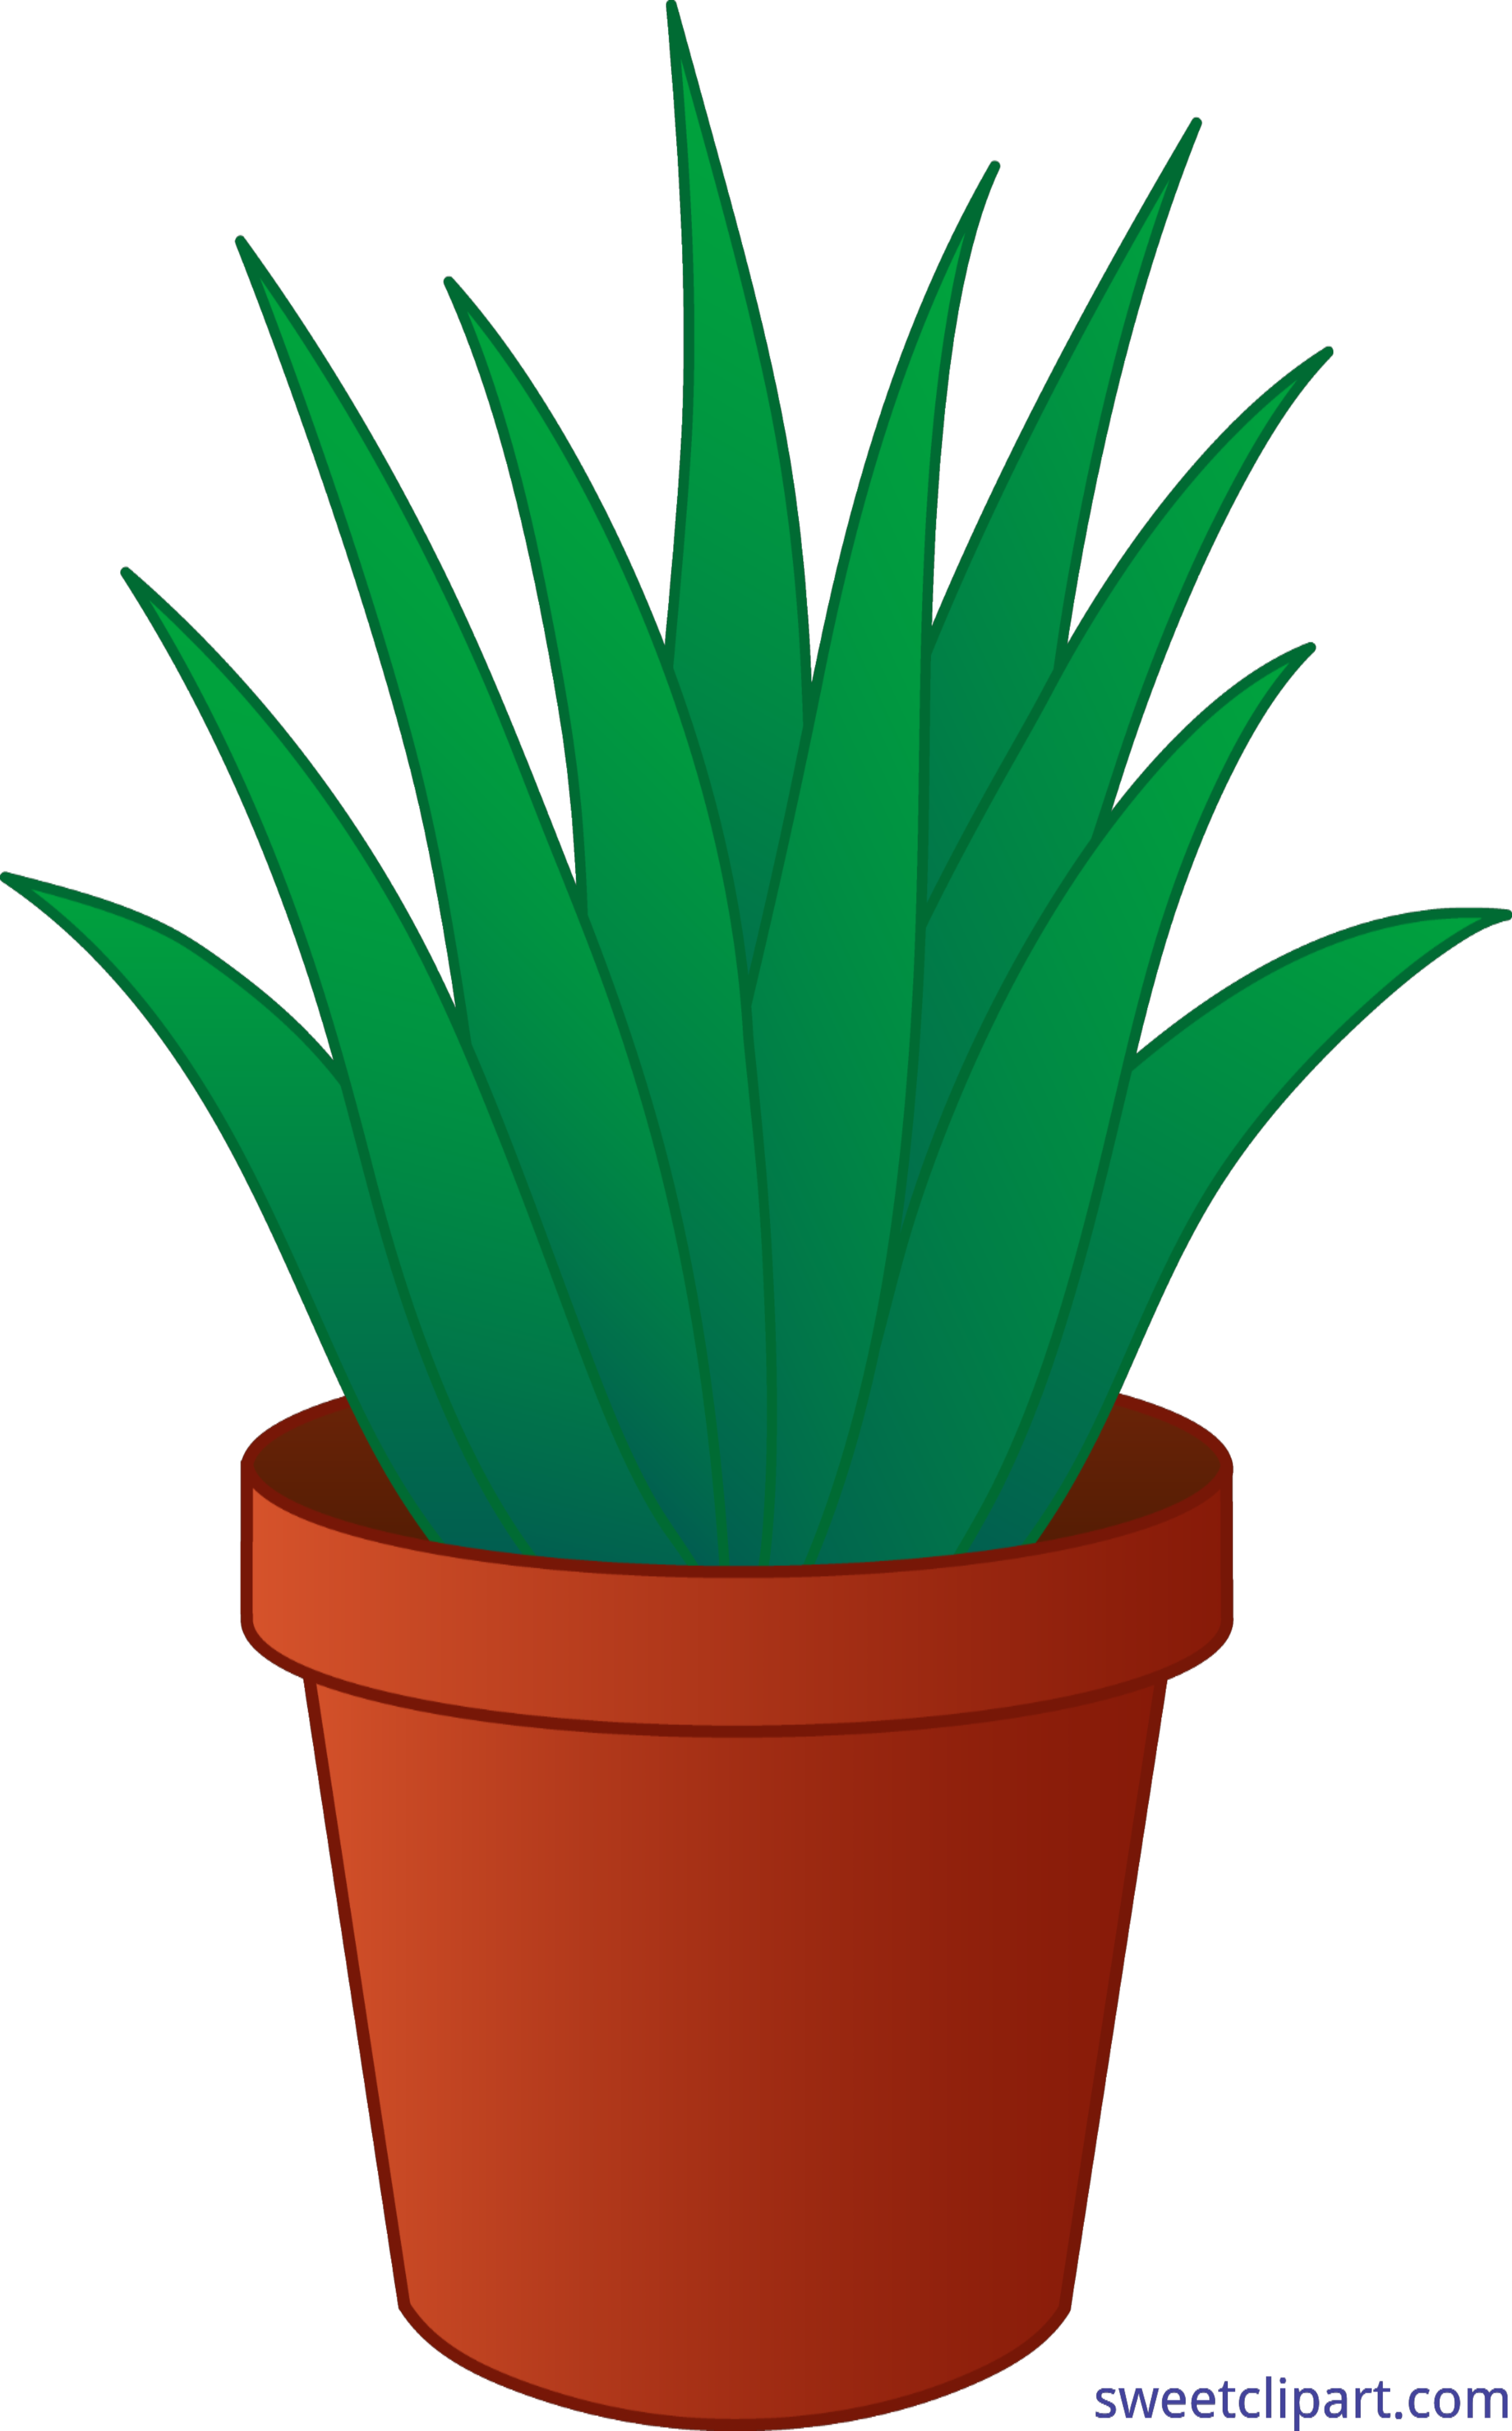 Pot drawing at getdrawings. Poinsettia clipart potted plant